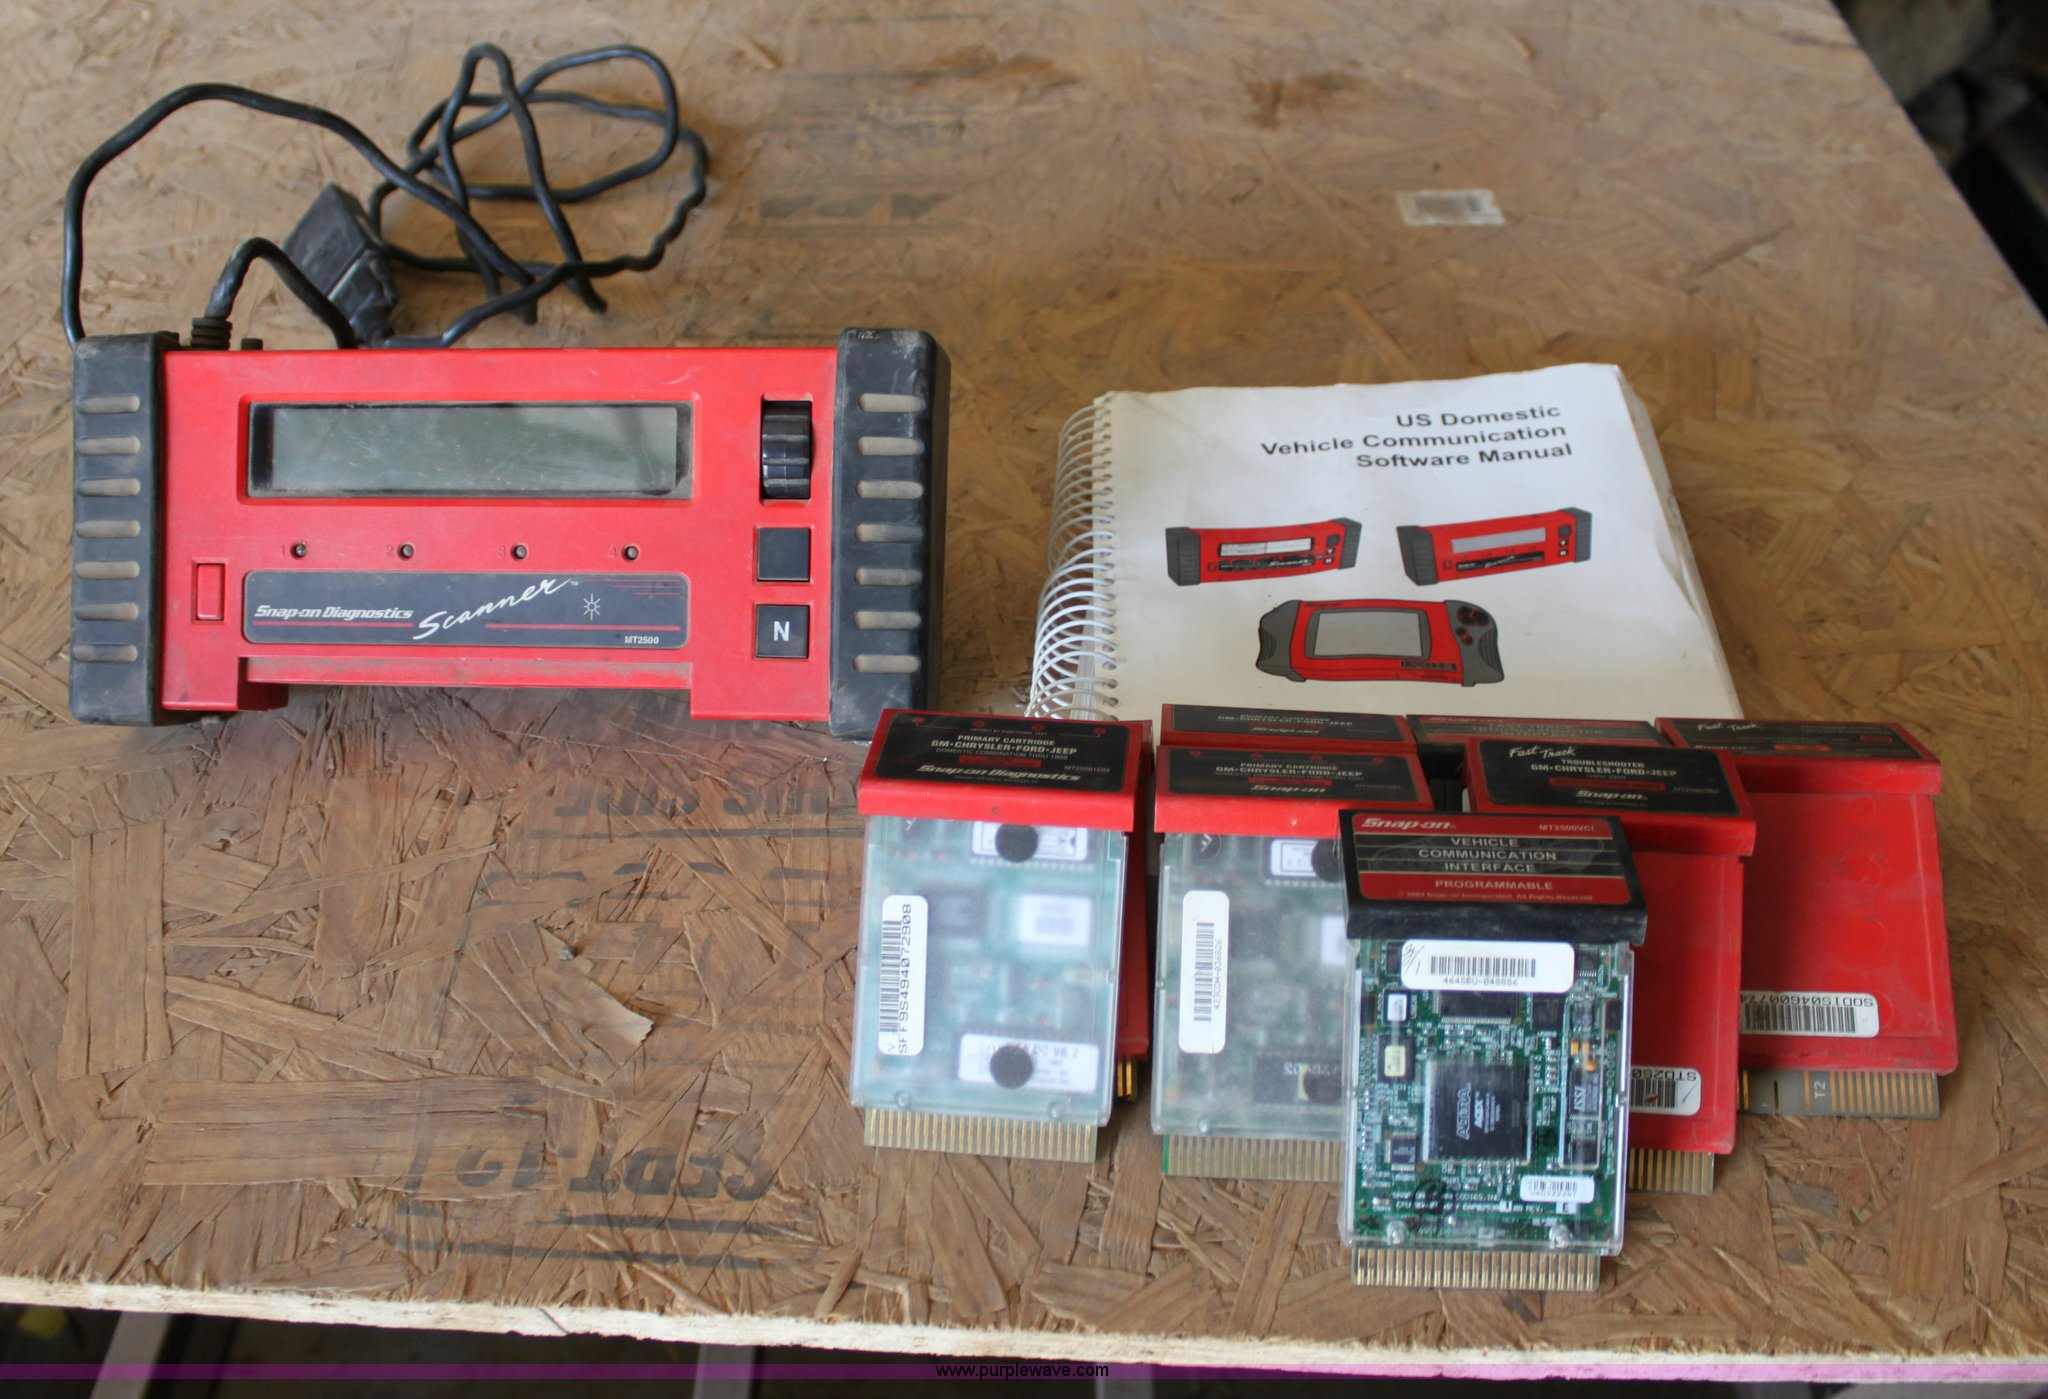 snap on mt2500 diagnostics scanner item aa9033 sold may rh purplewave com Communications Manuals Example Communications Manual for Organizations